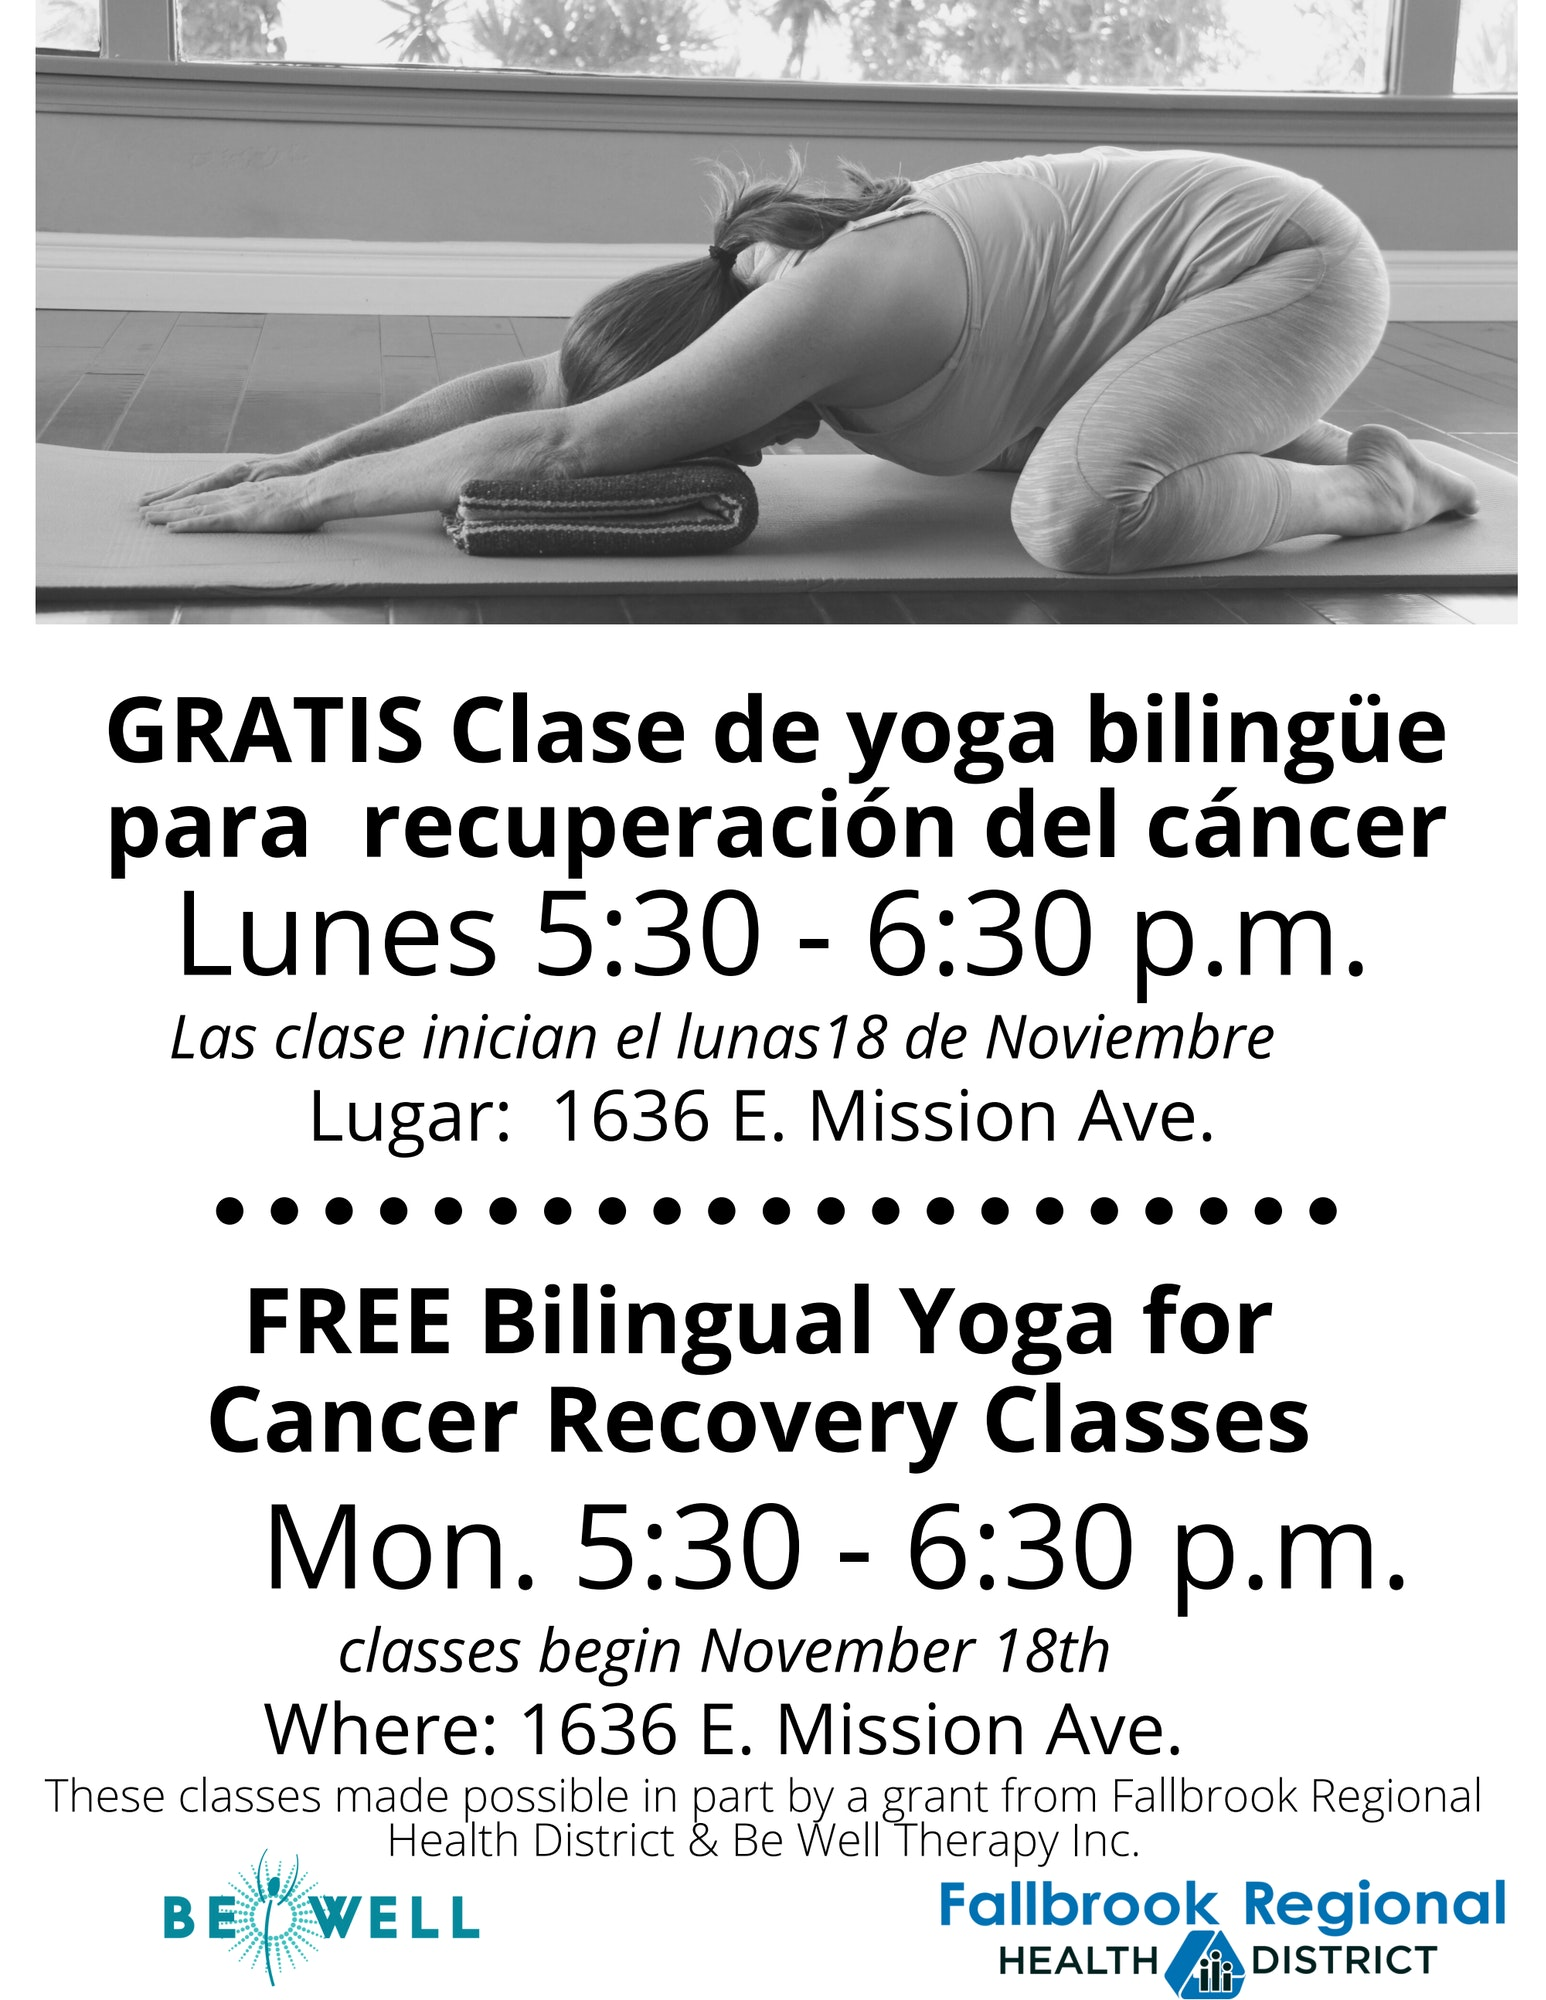 Woman in extended child's pose. free bilingual yoga for cancer recovery classes, Mondays 5:30pm-6:30pm at 1636 E. Mission Rd. bilingue clases gratis de yoga para recupracion del cancer, lunes 5:30pm-6:30pm, 1636 E. Mission Rd.